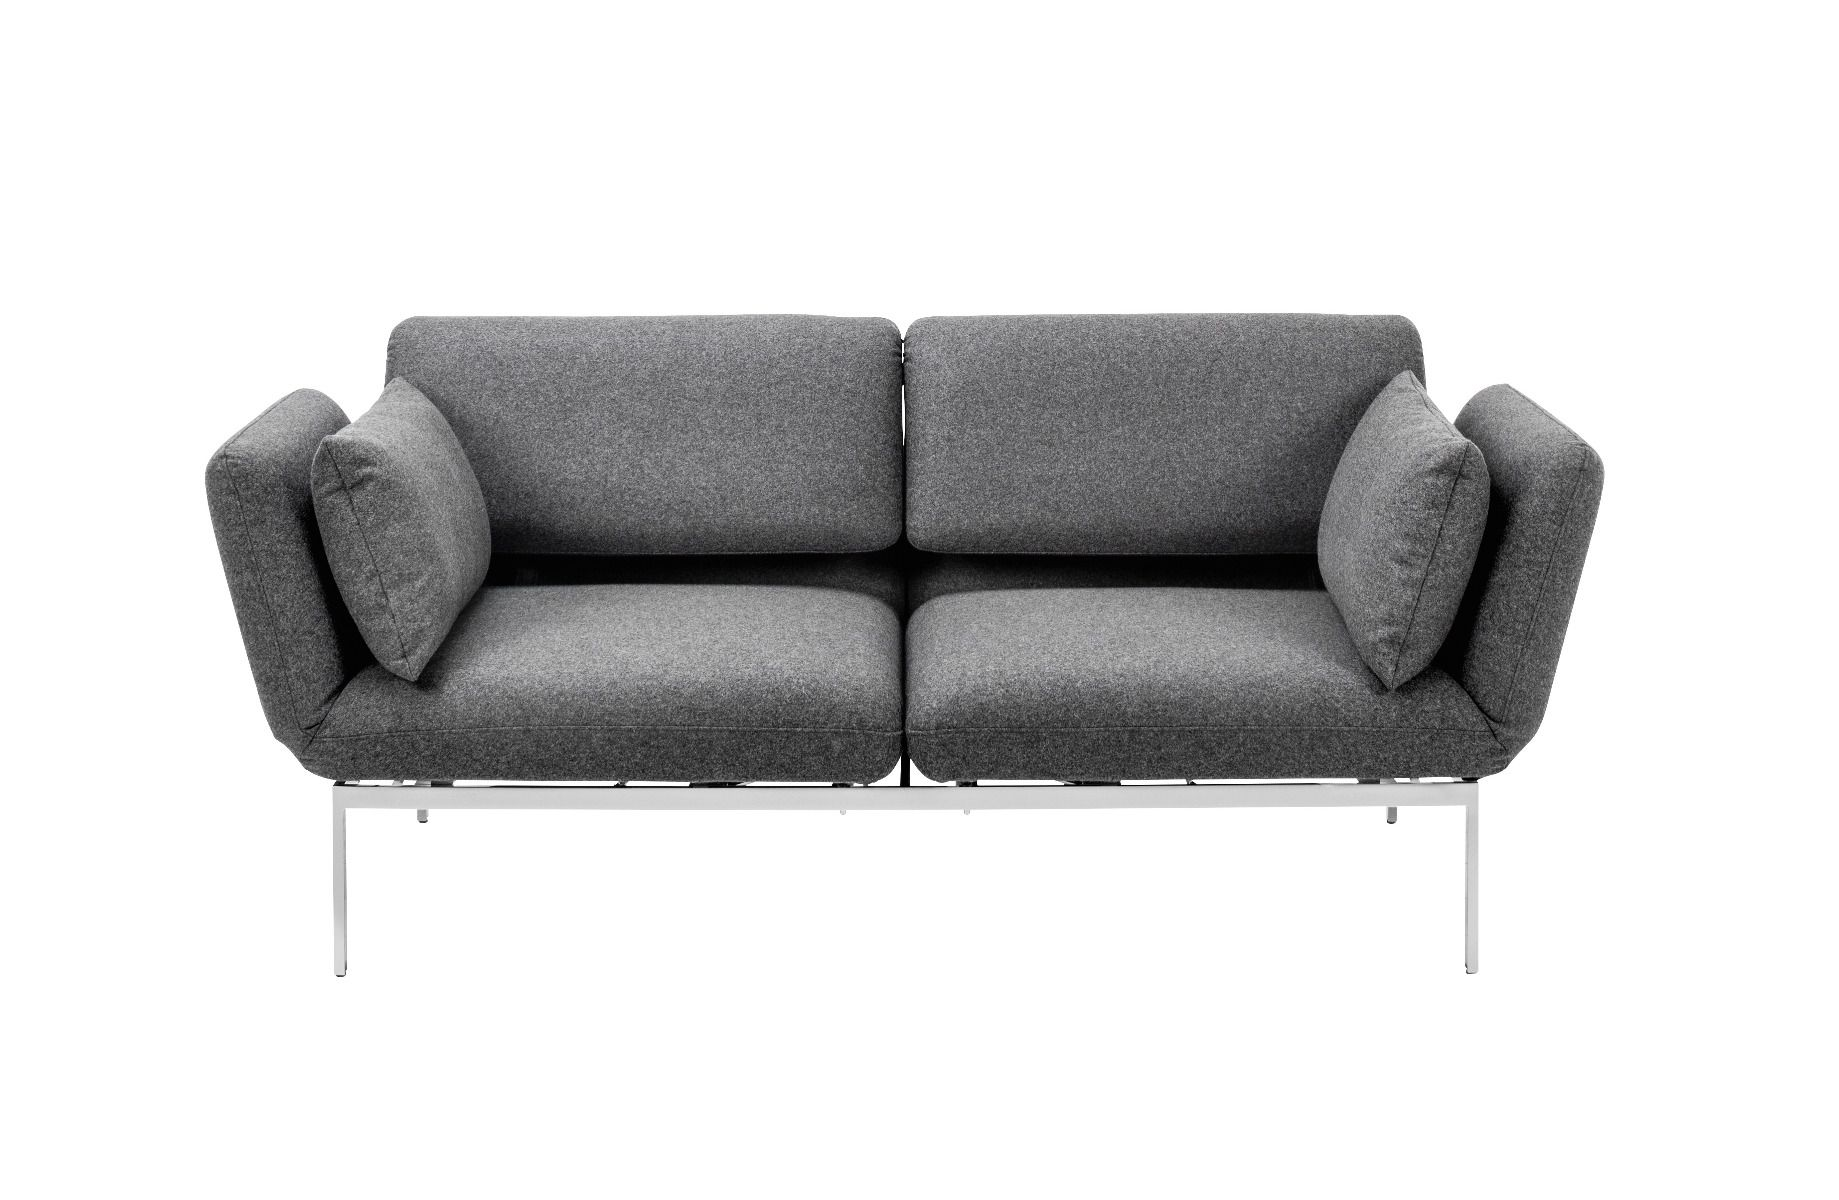 Polstermöbel Outlet Herford Roro Sofa